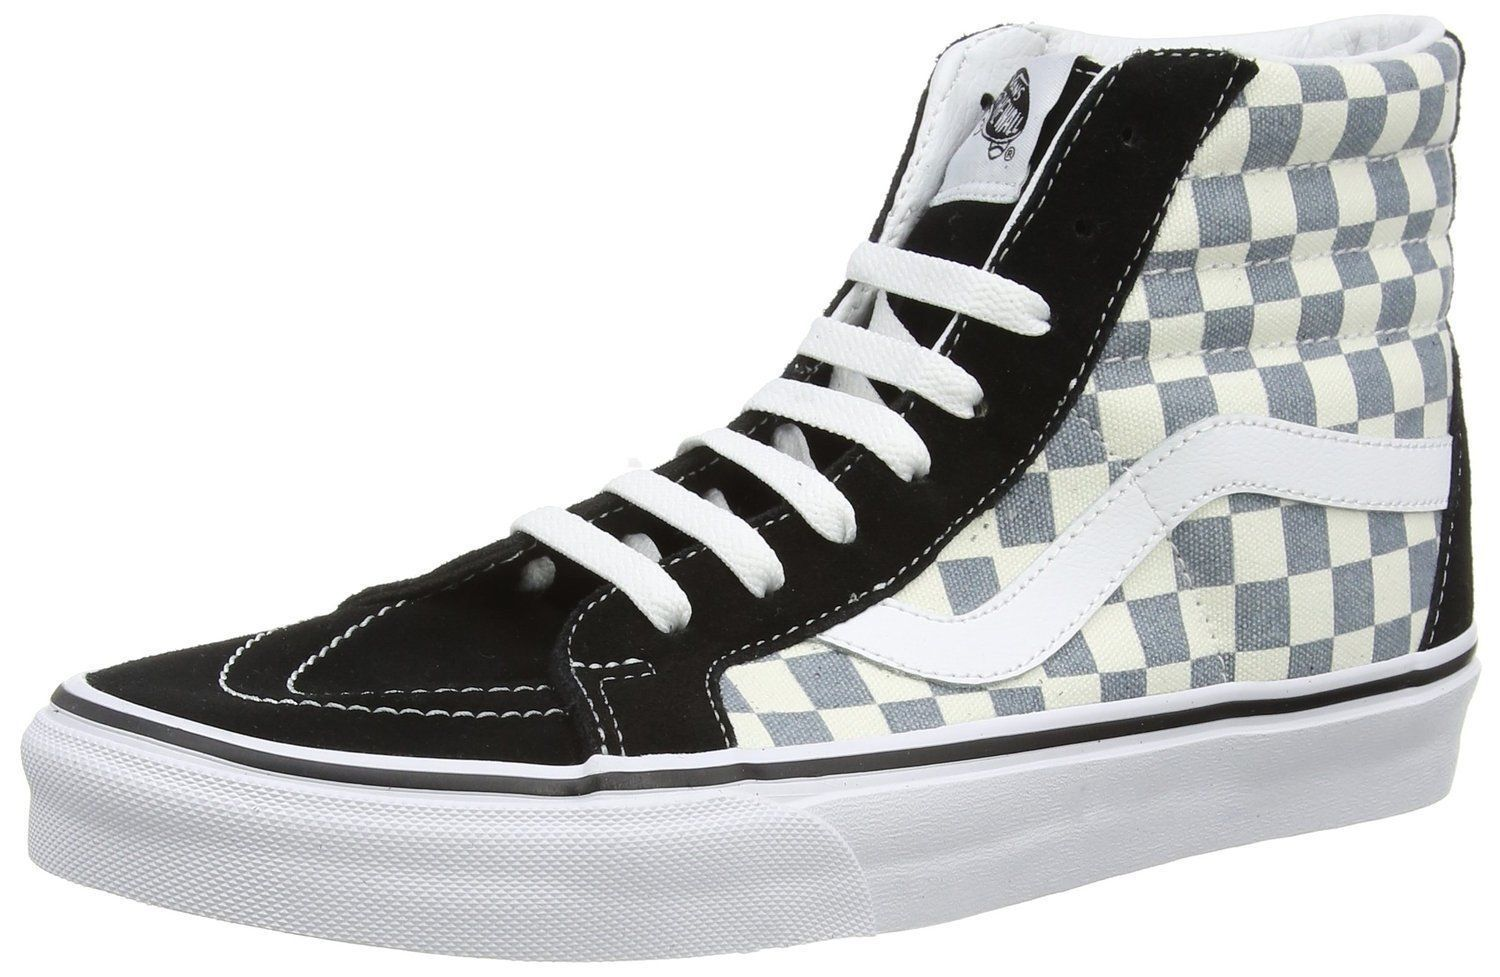 VANS SK8-HI REISSUE CHECKERBOARD MEN SHOES VN0003CAIB7 BLACK/CITADEL VN0003CAIB7 SHOES SIZE 12 NU 739b14